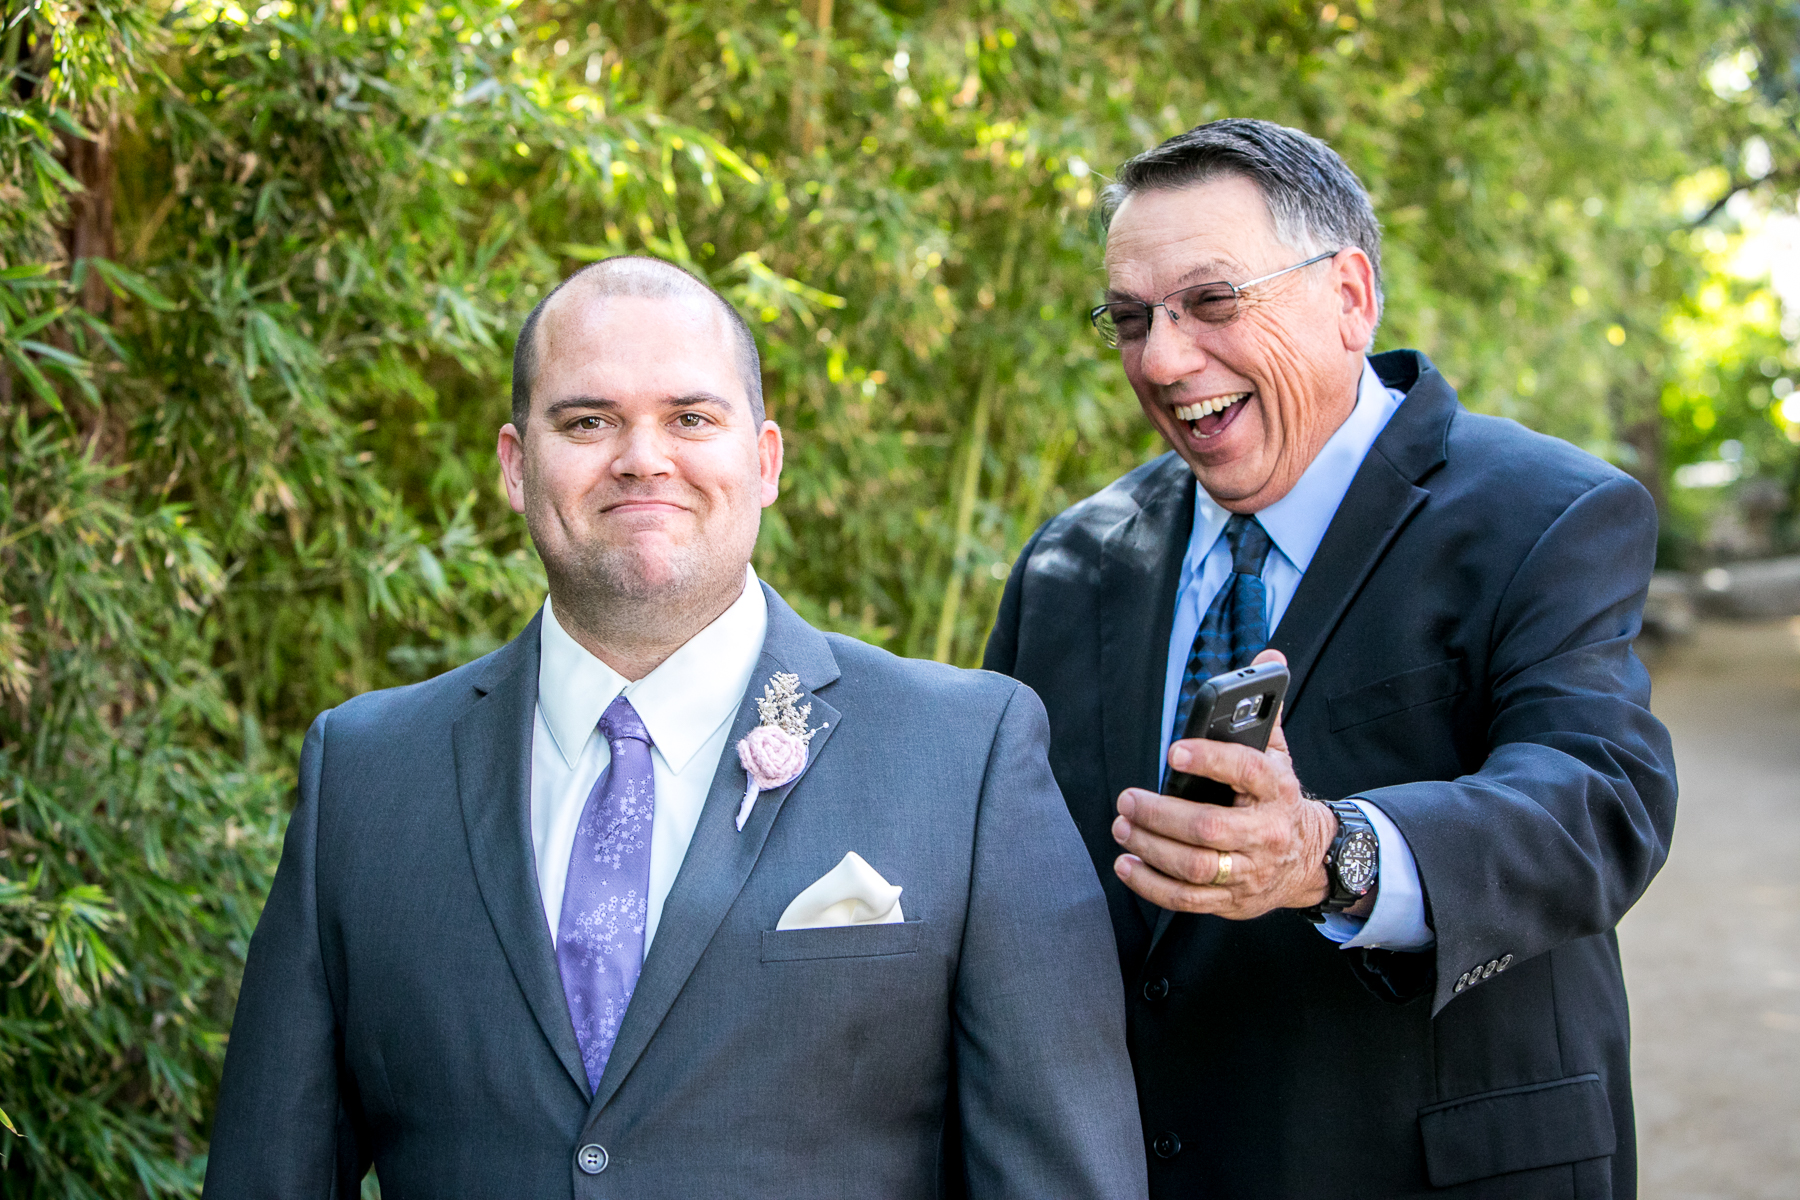 wedding guest jokes with Jonathan about football score during wedding in pasadena photography